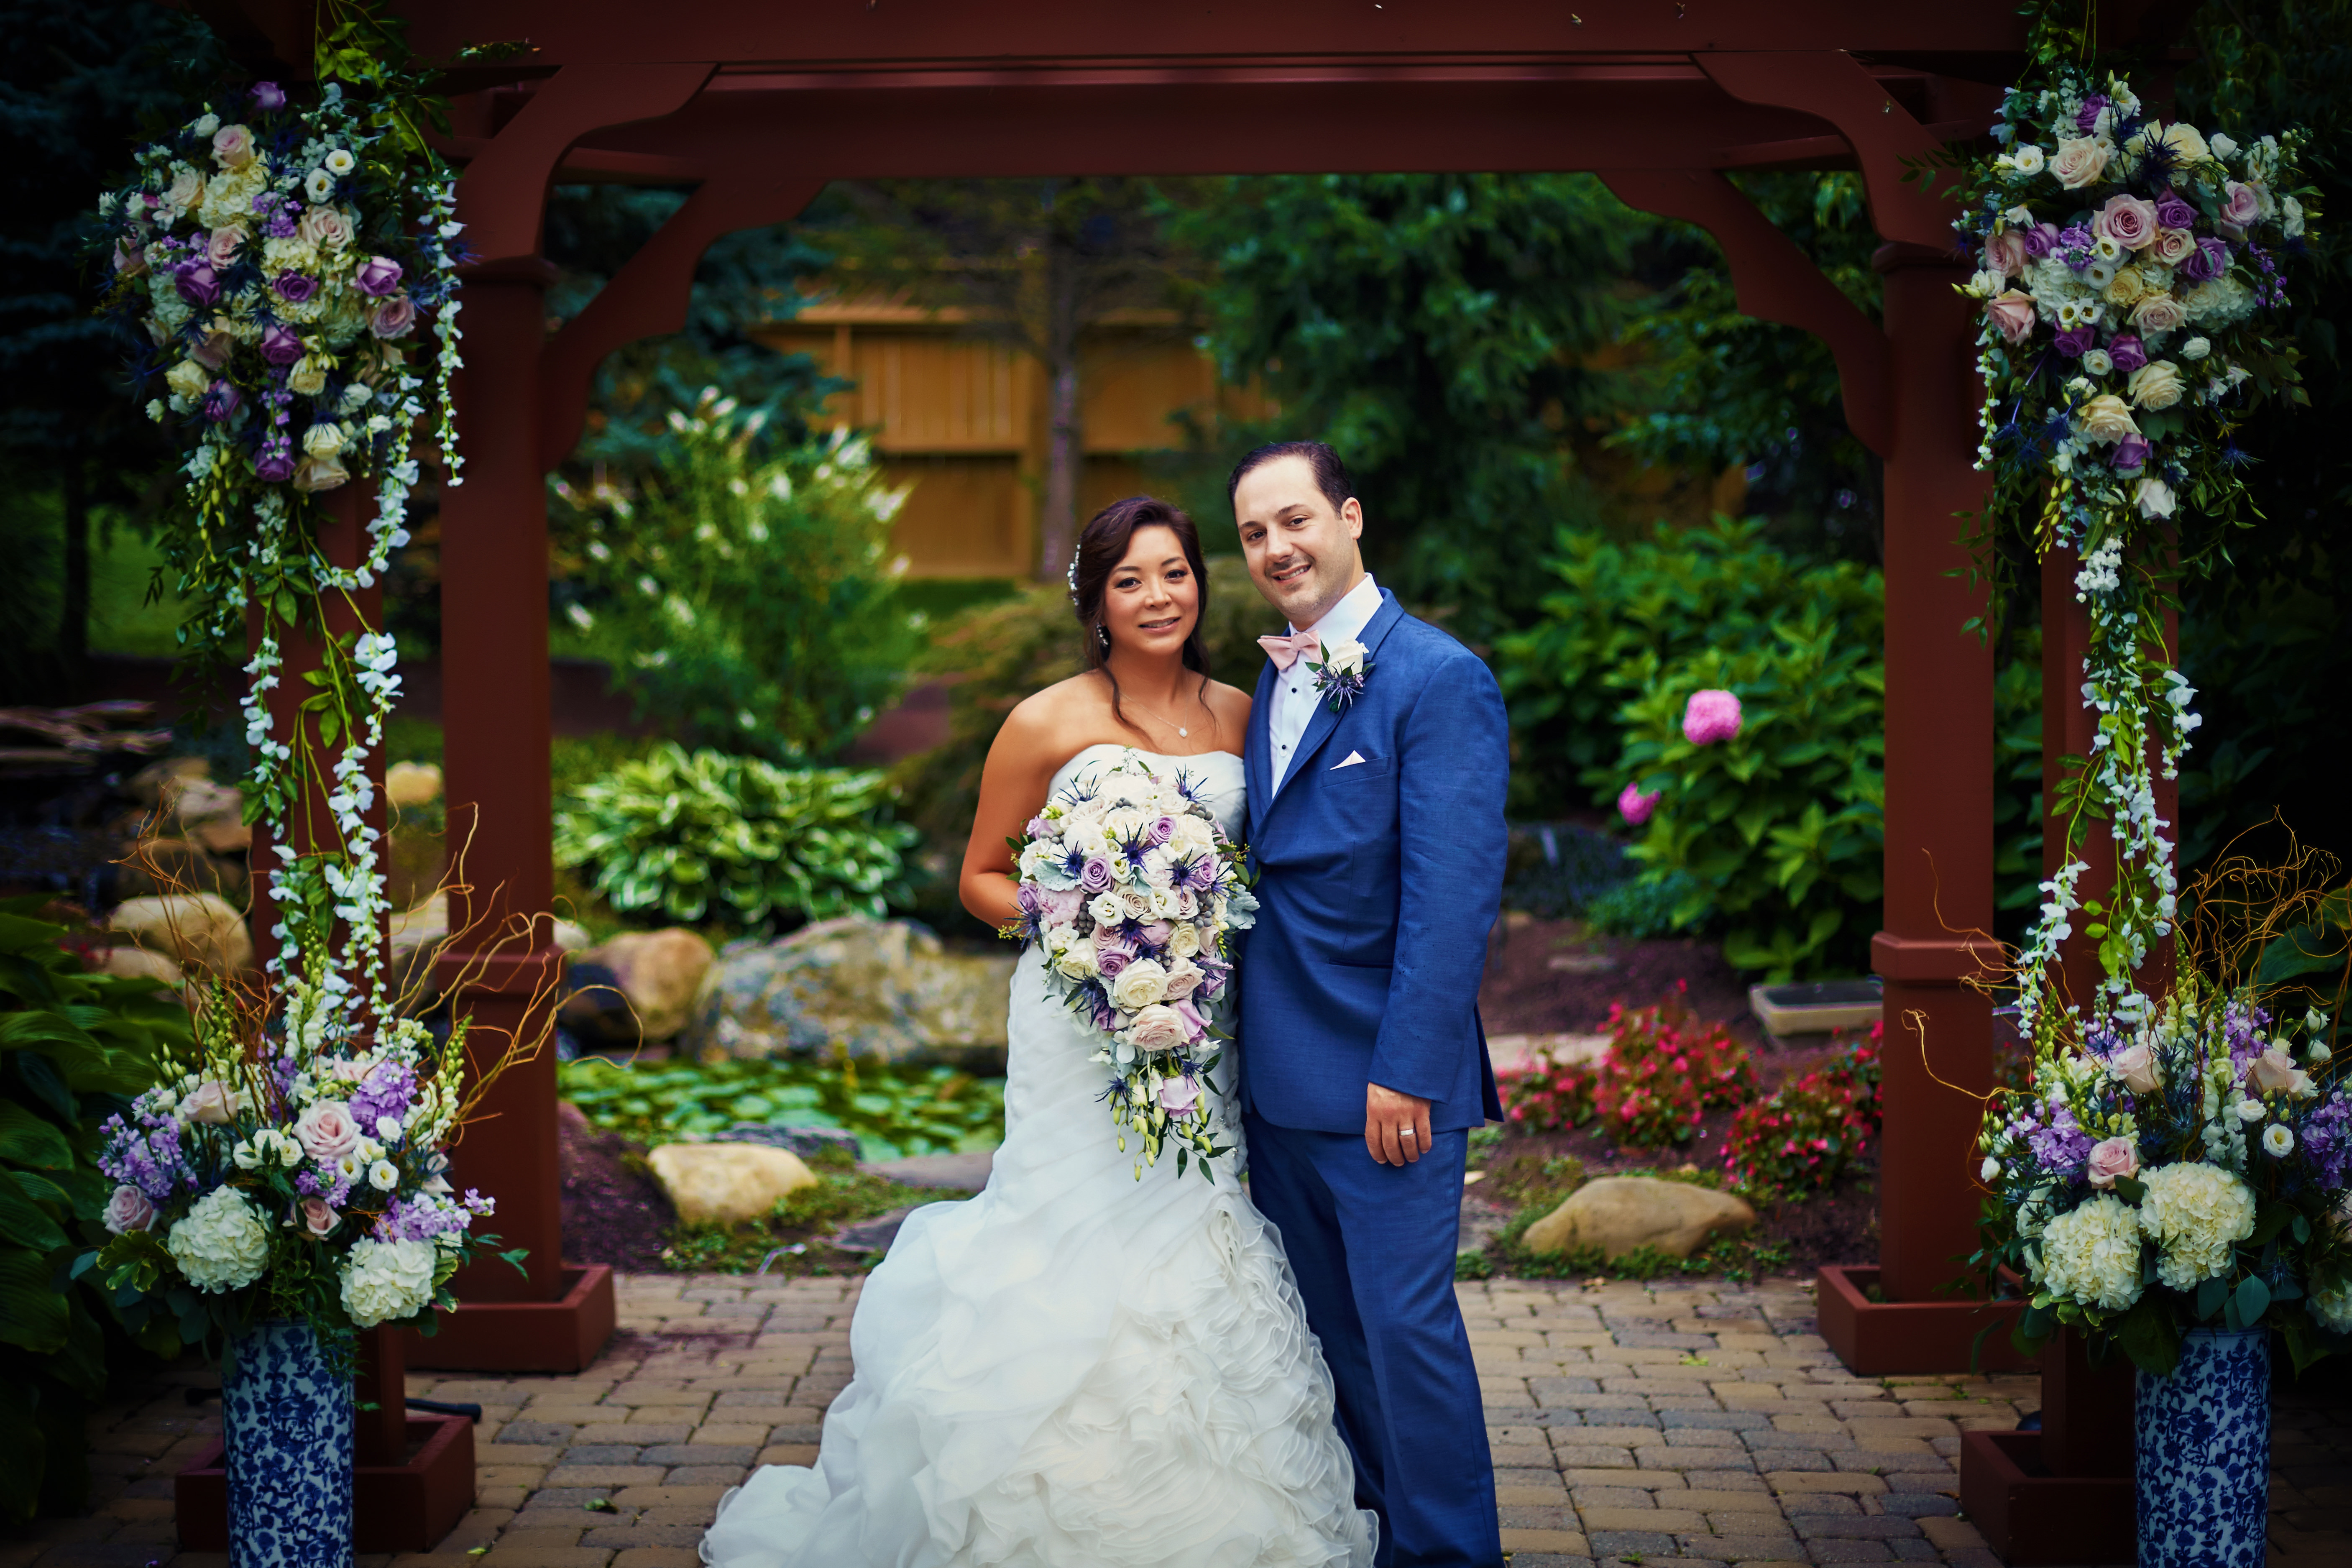 Wedding Photography in Vernon New Jersey